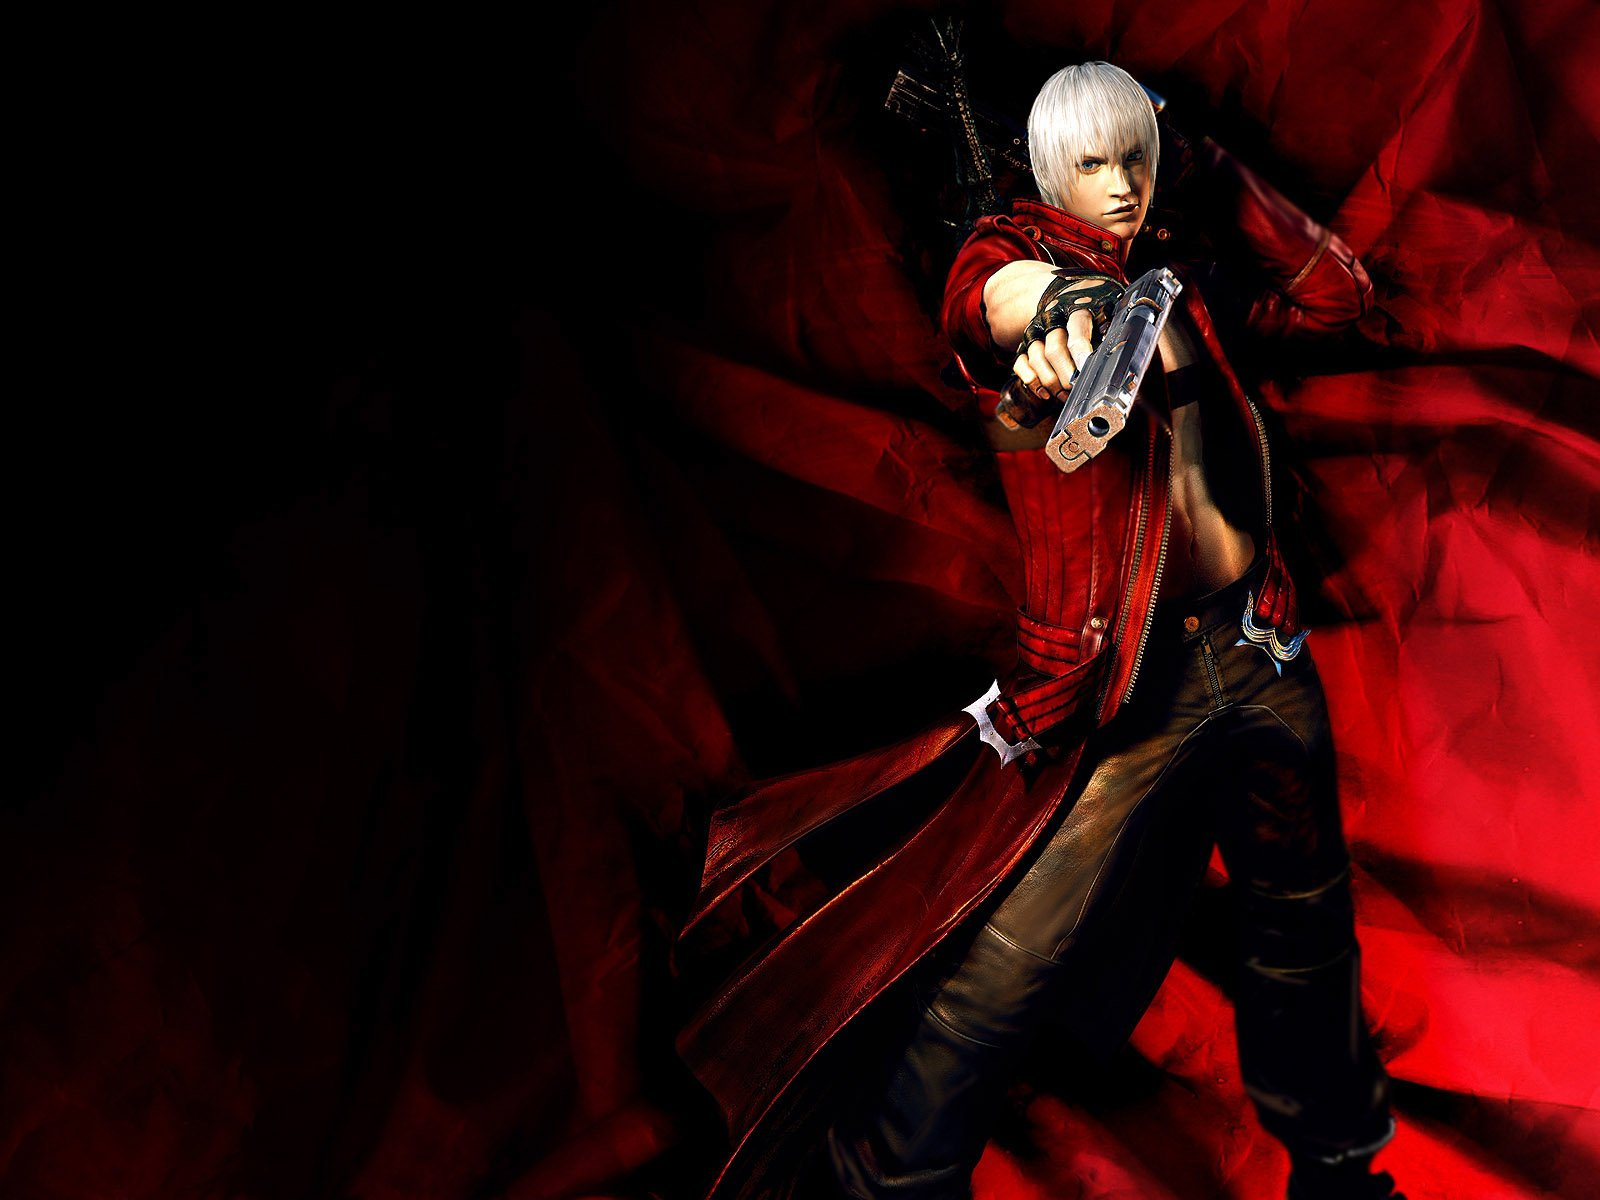 411 Devil May Cry Hd Wallpapers Background Images Wallpaper Abyss